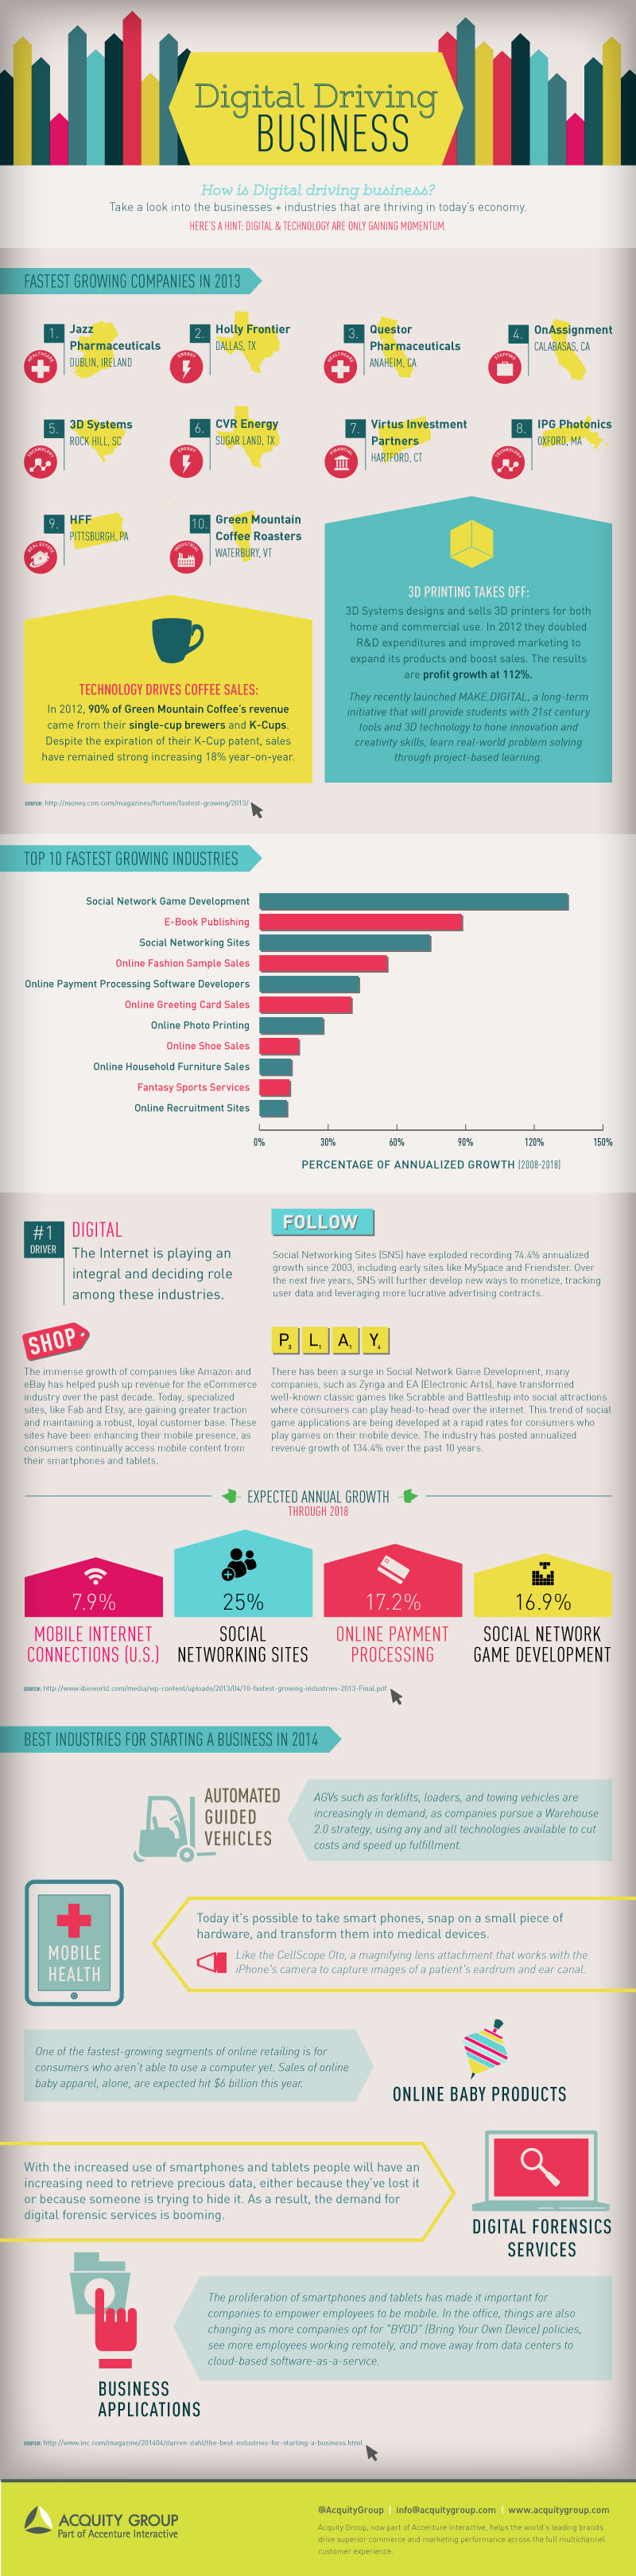 Digital Media Driving Business - #infographic